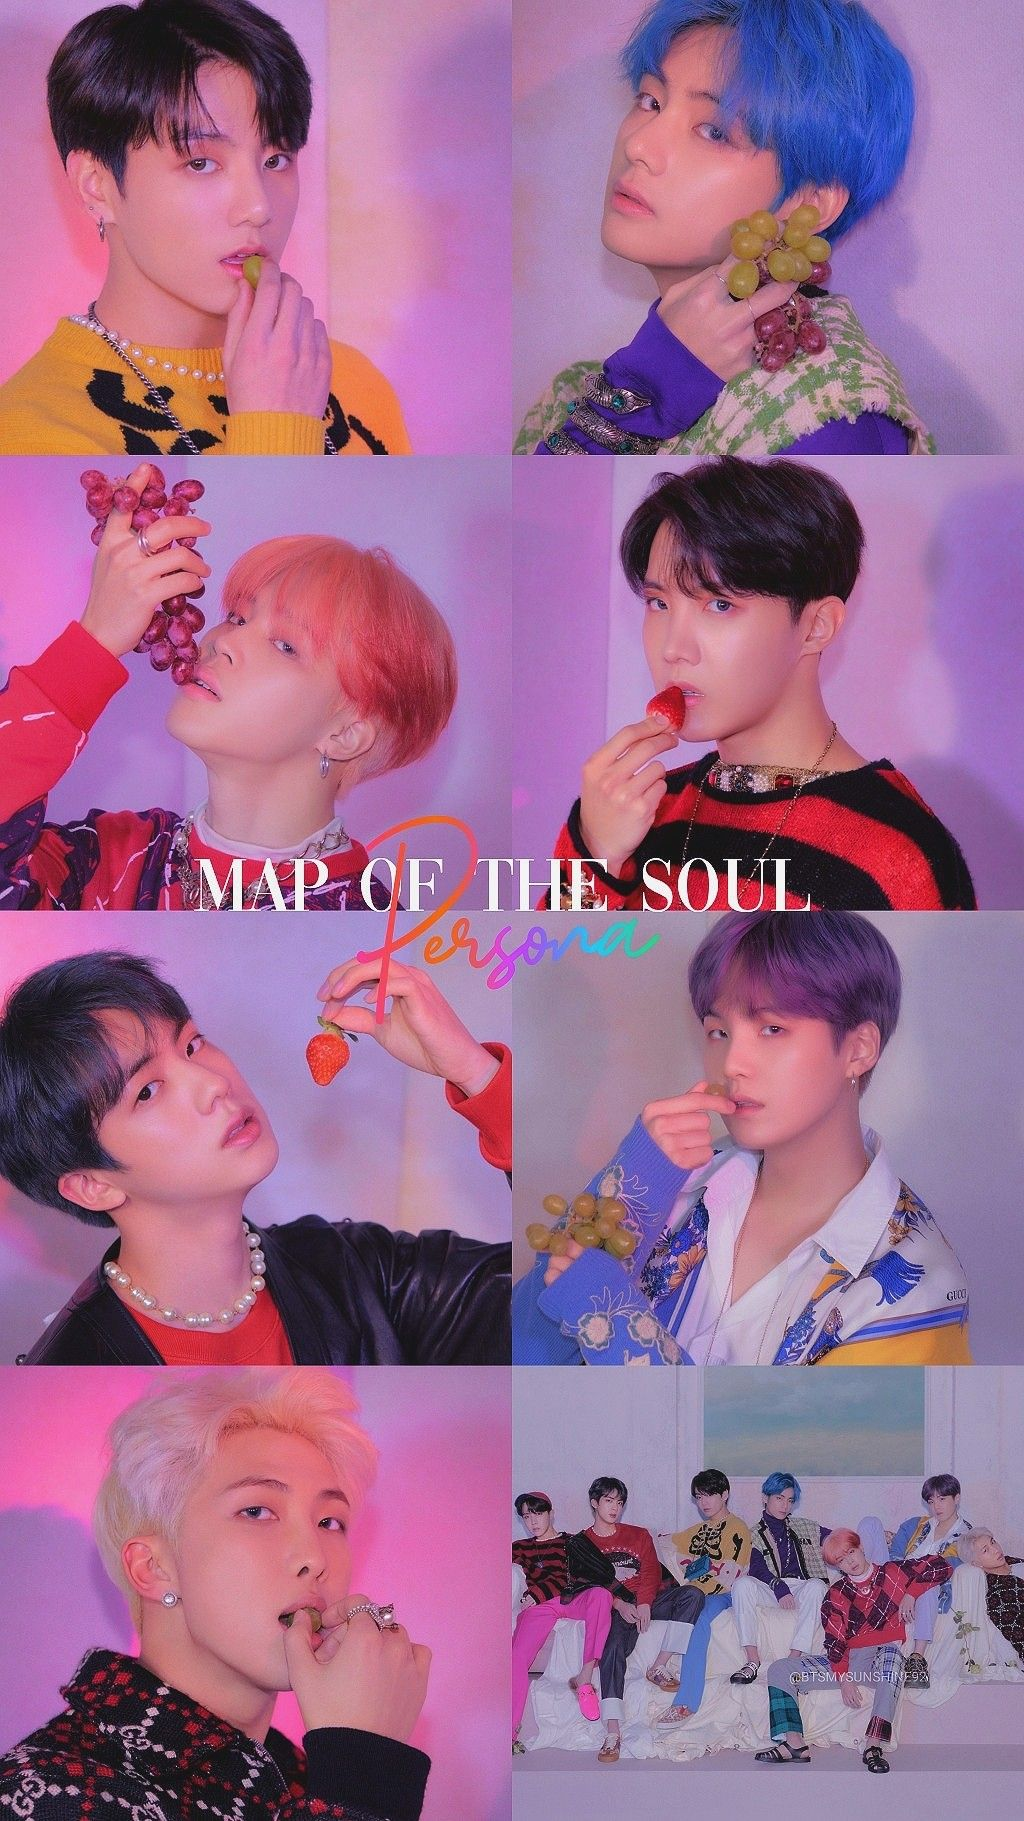 Free Download Map Of The Soul Persona Concept Photo Version